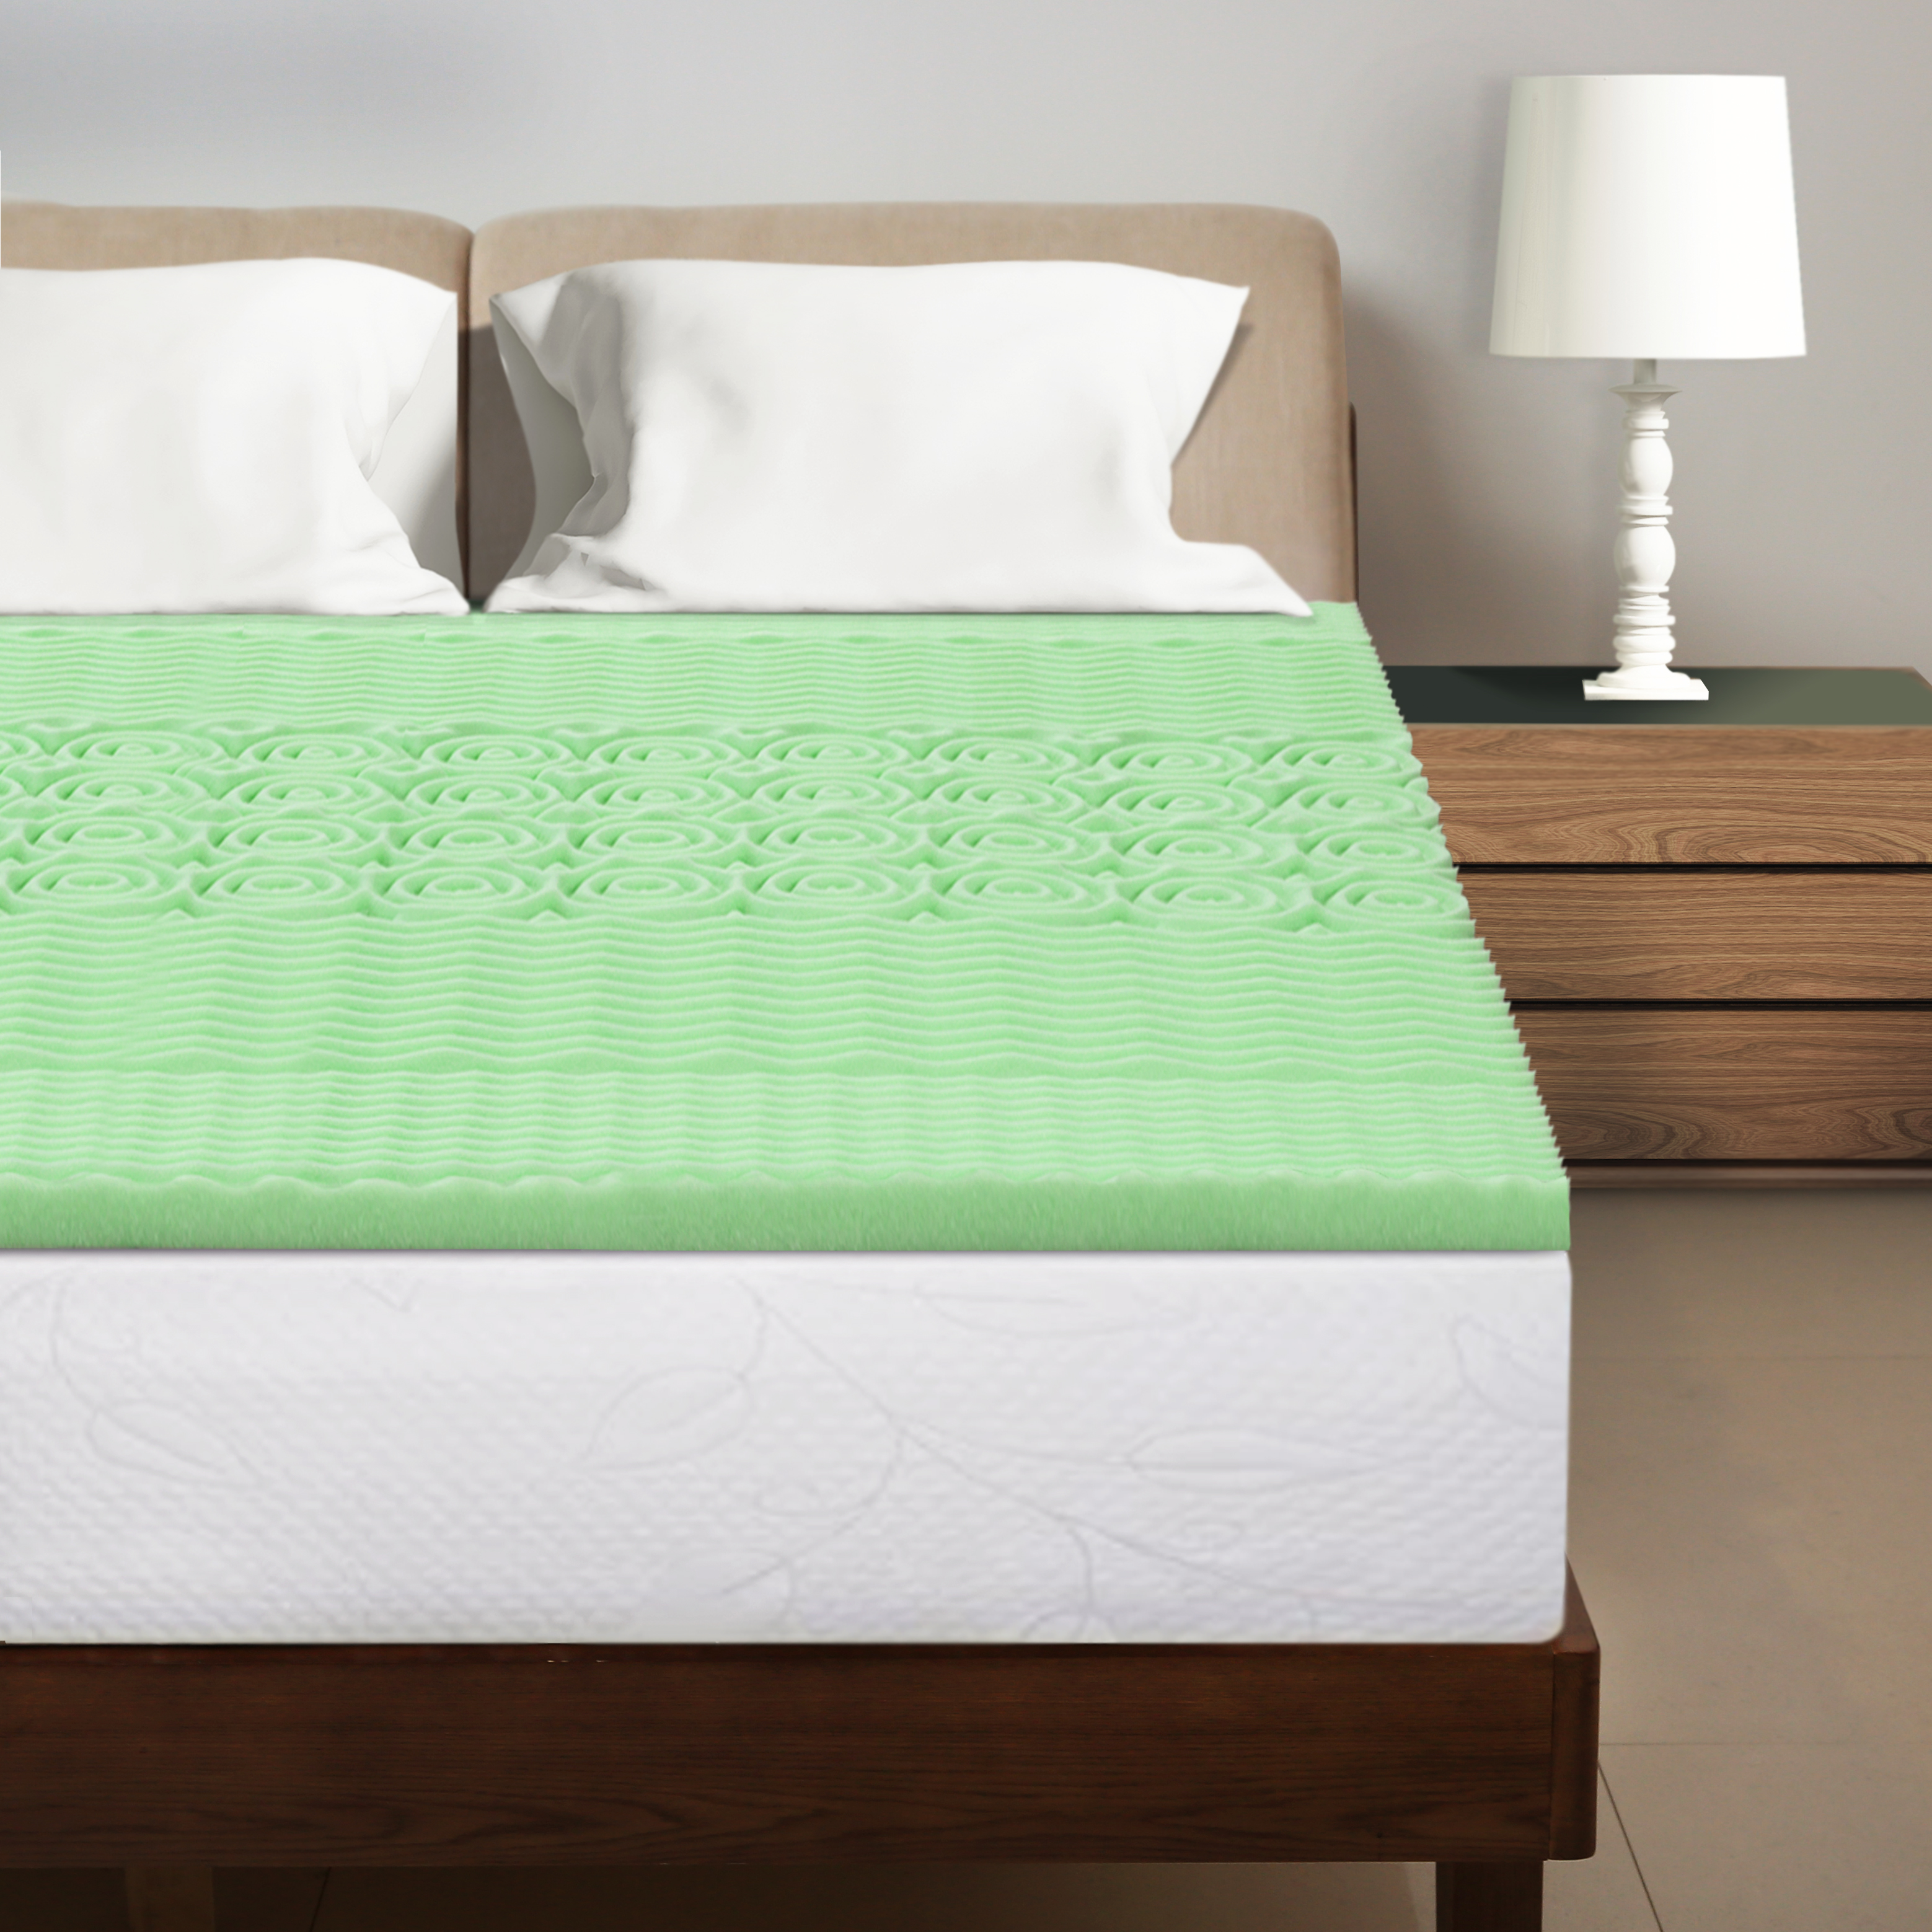 Best Price Mattress 1.5 Inch 5-Zone Memory Foam Bed Topper Aloe Infused Cooling Mattress Pad